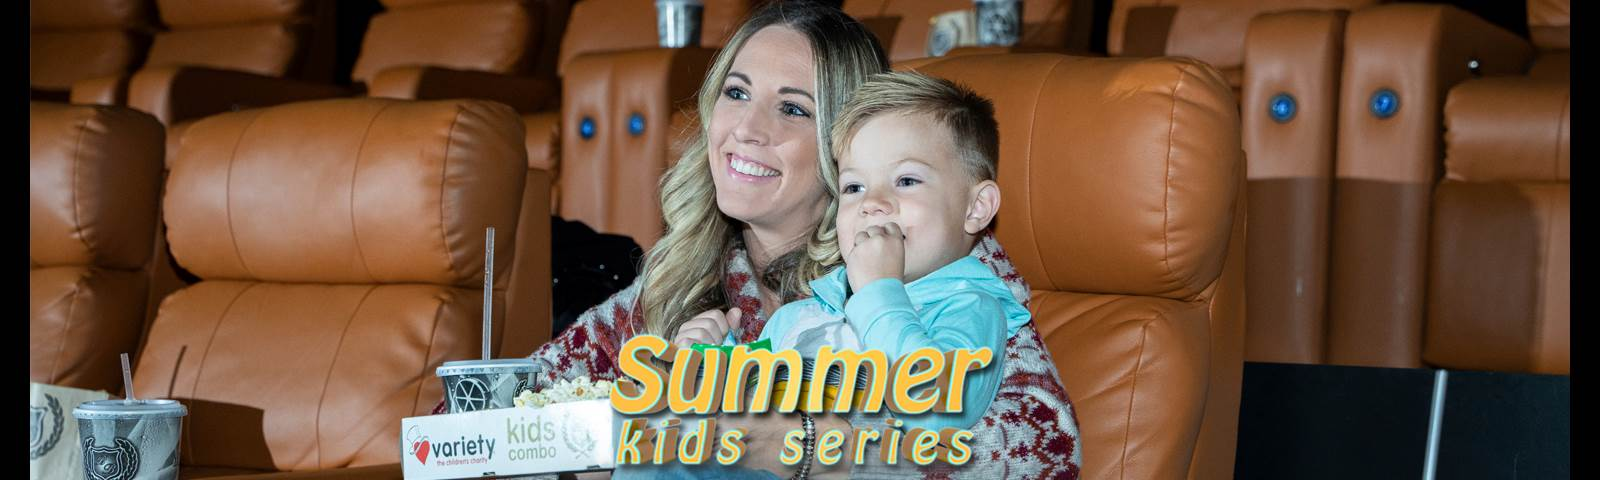 Summer Kids Series image